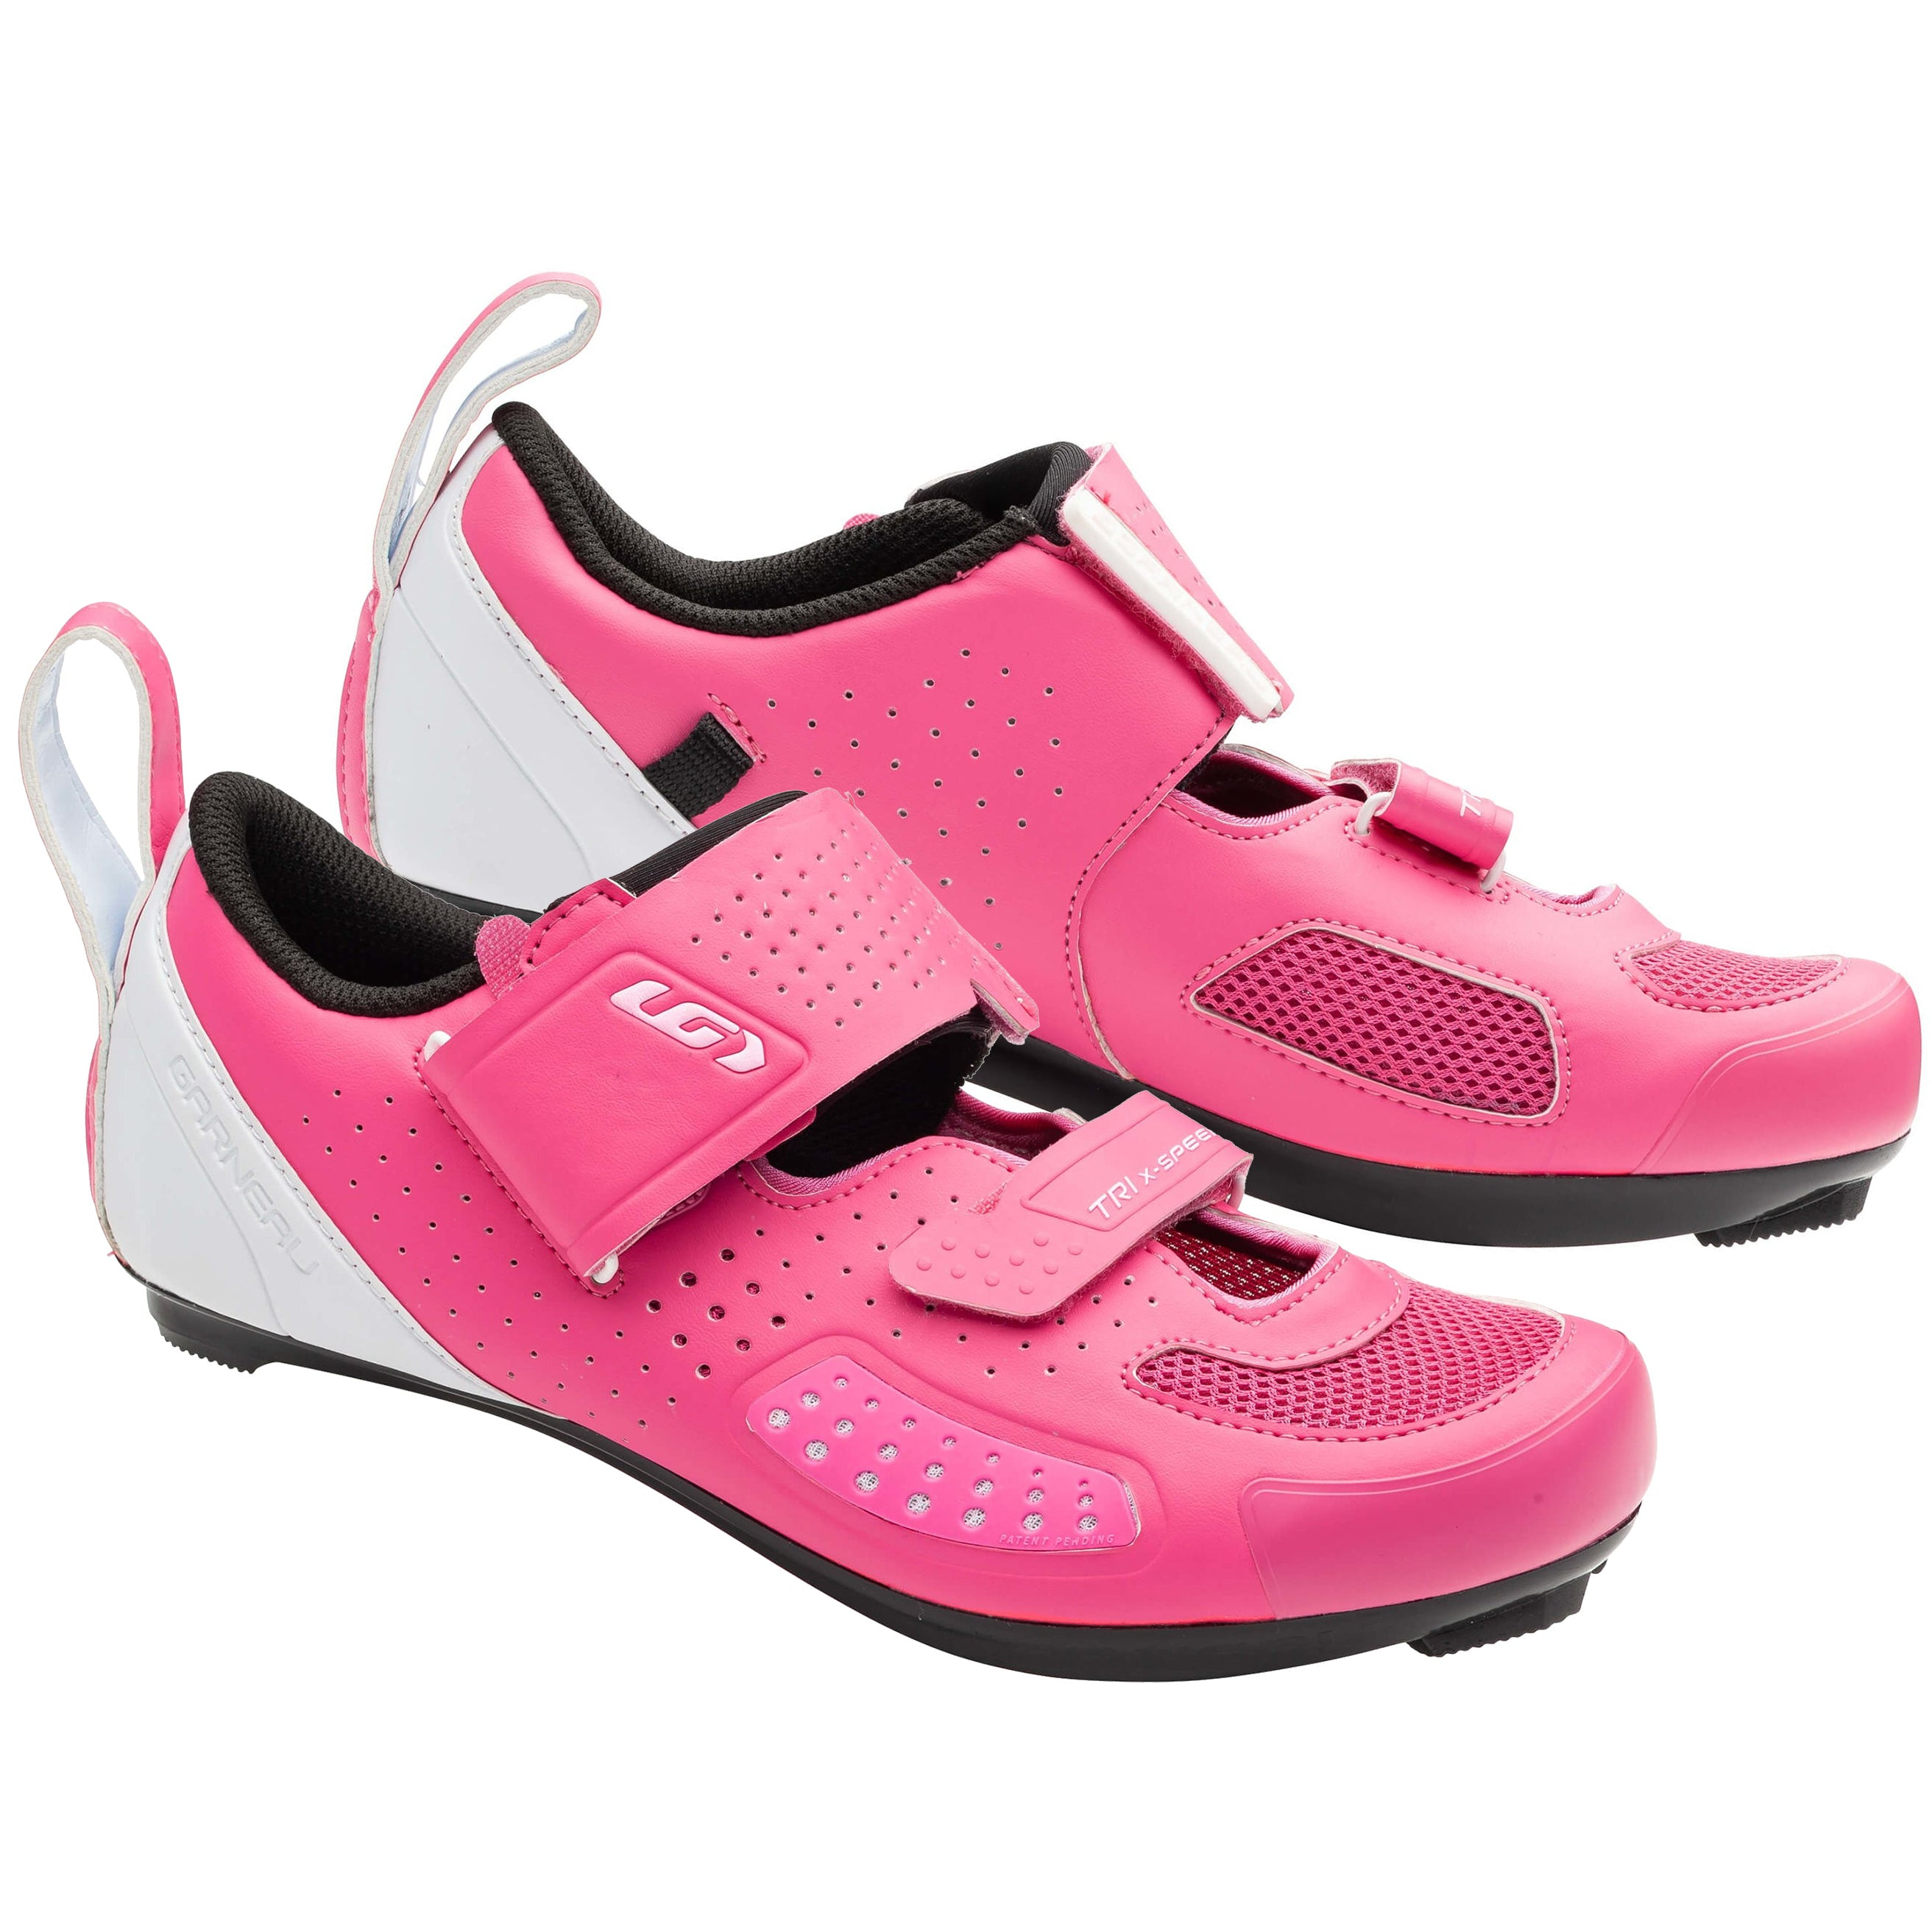 Louis Garneau Women's Tri X-Speed IV Cycling Shoes